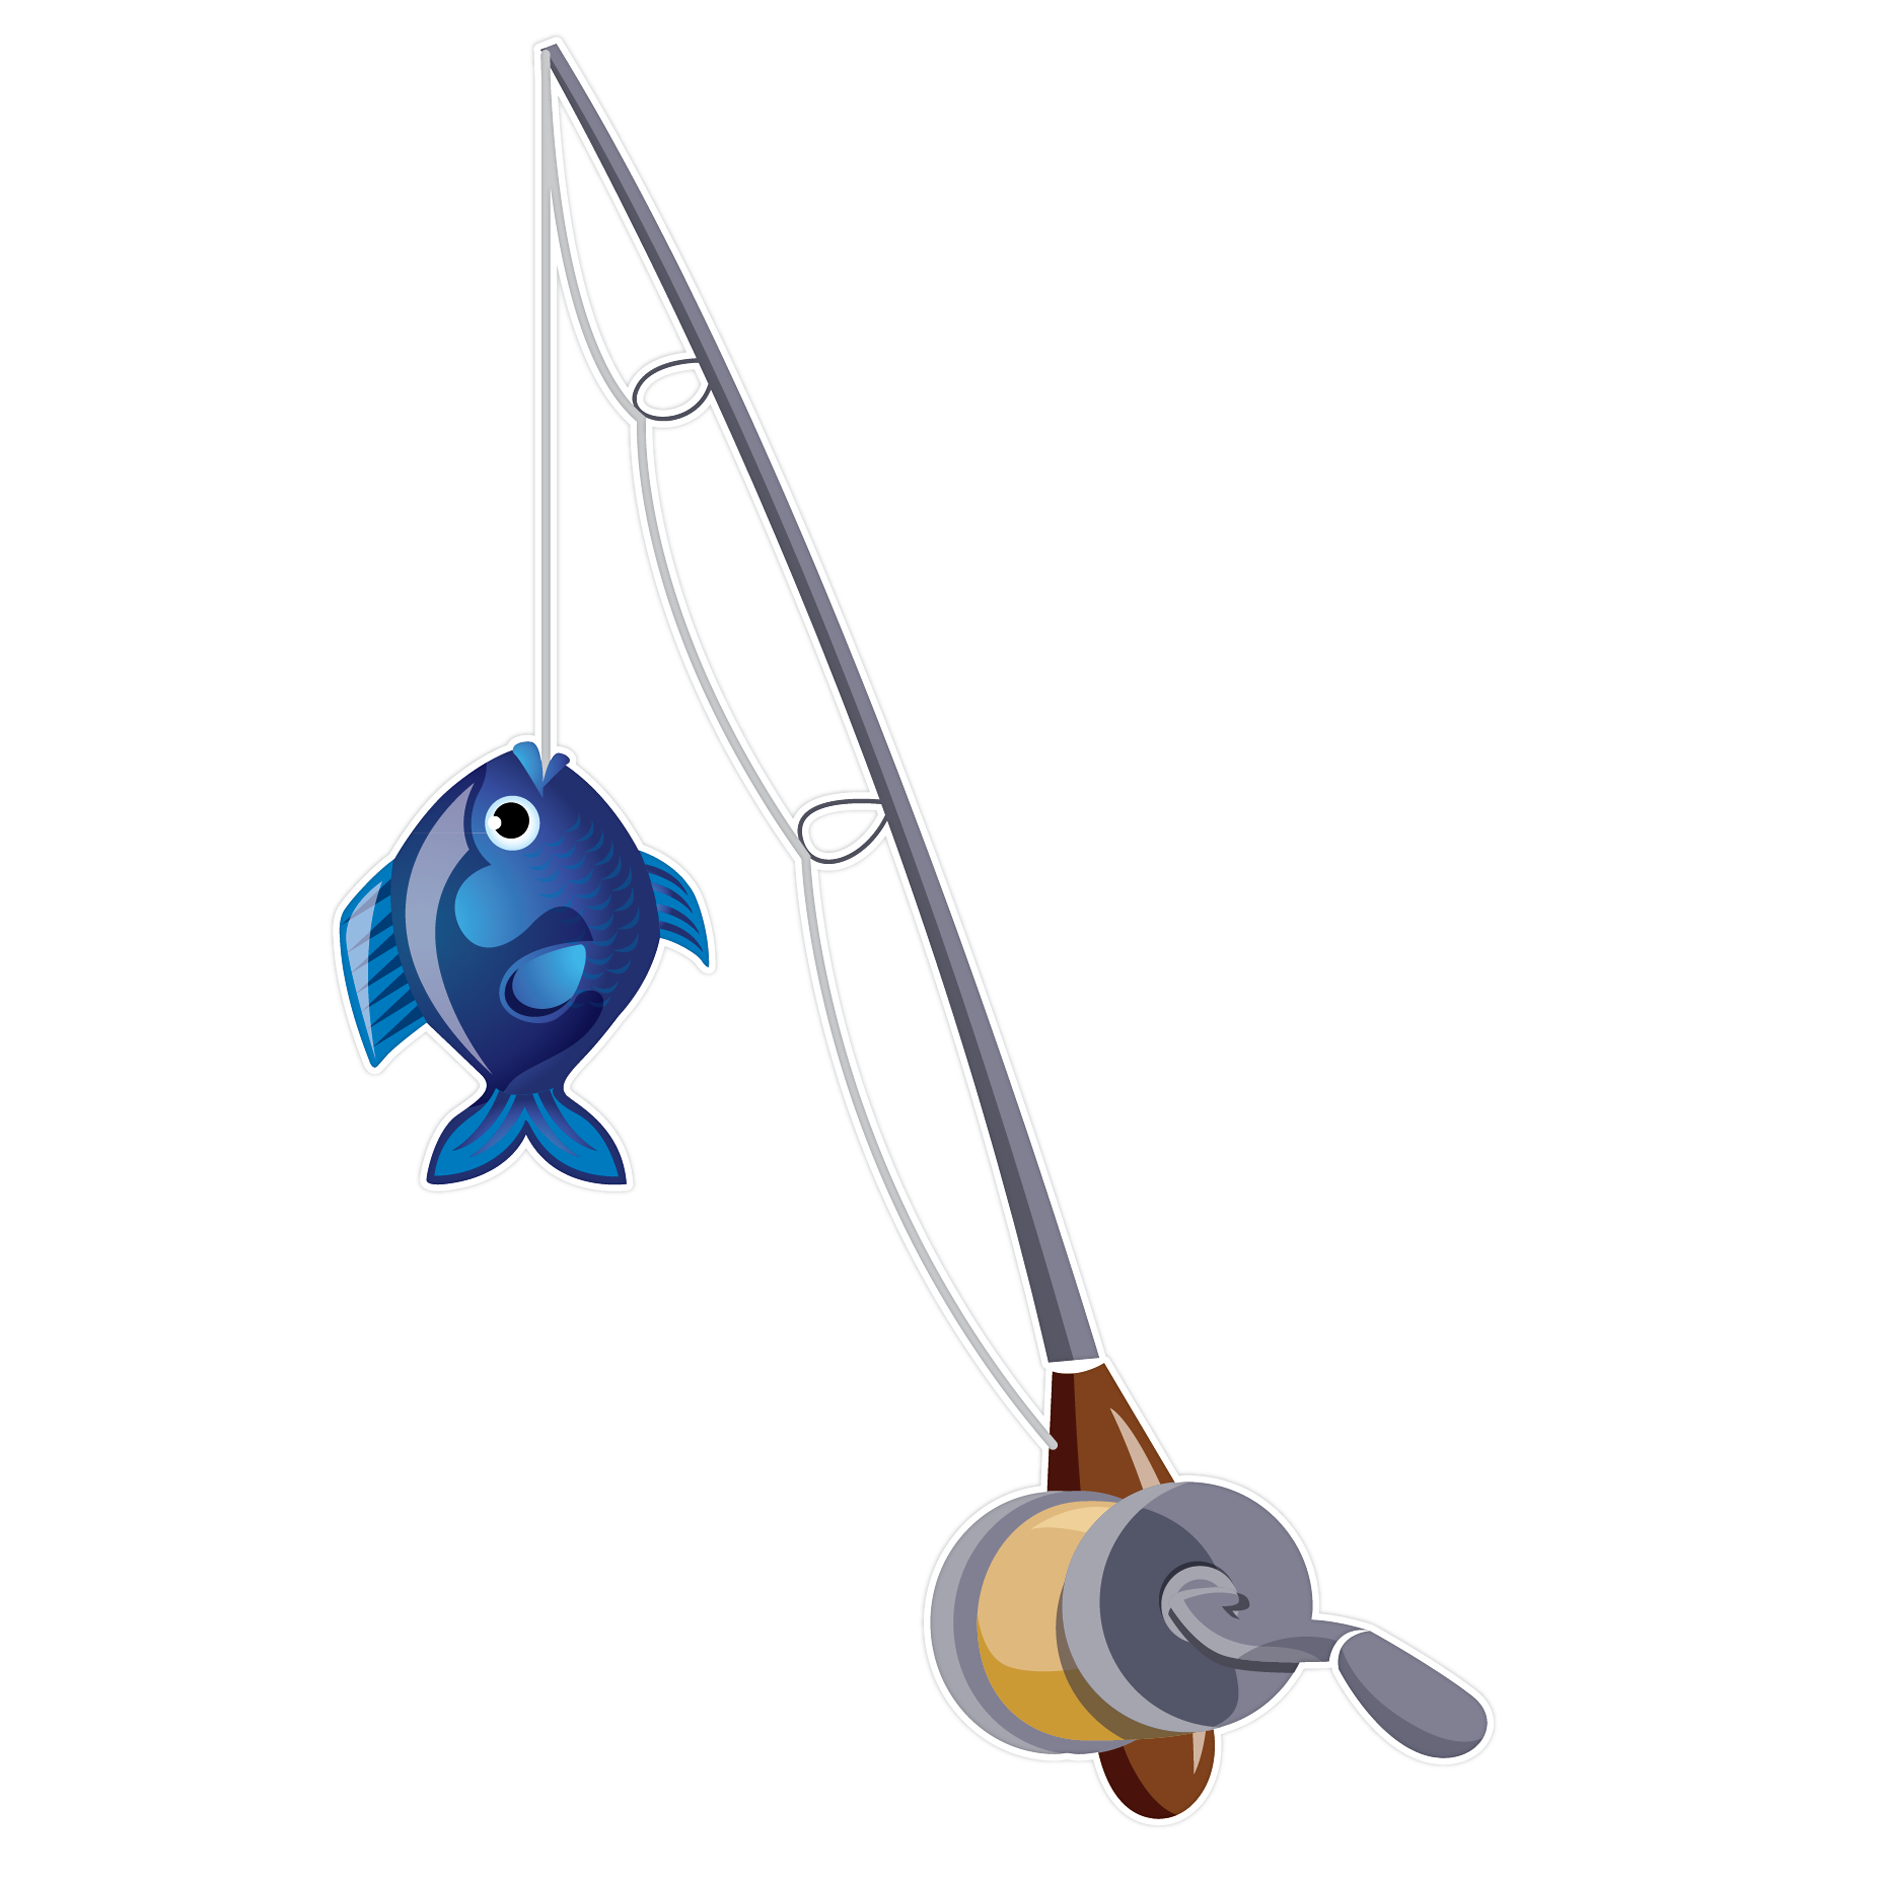 Fishing pole clipart fishing rod image 3